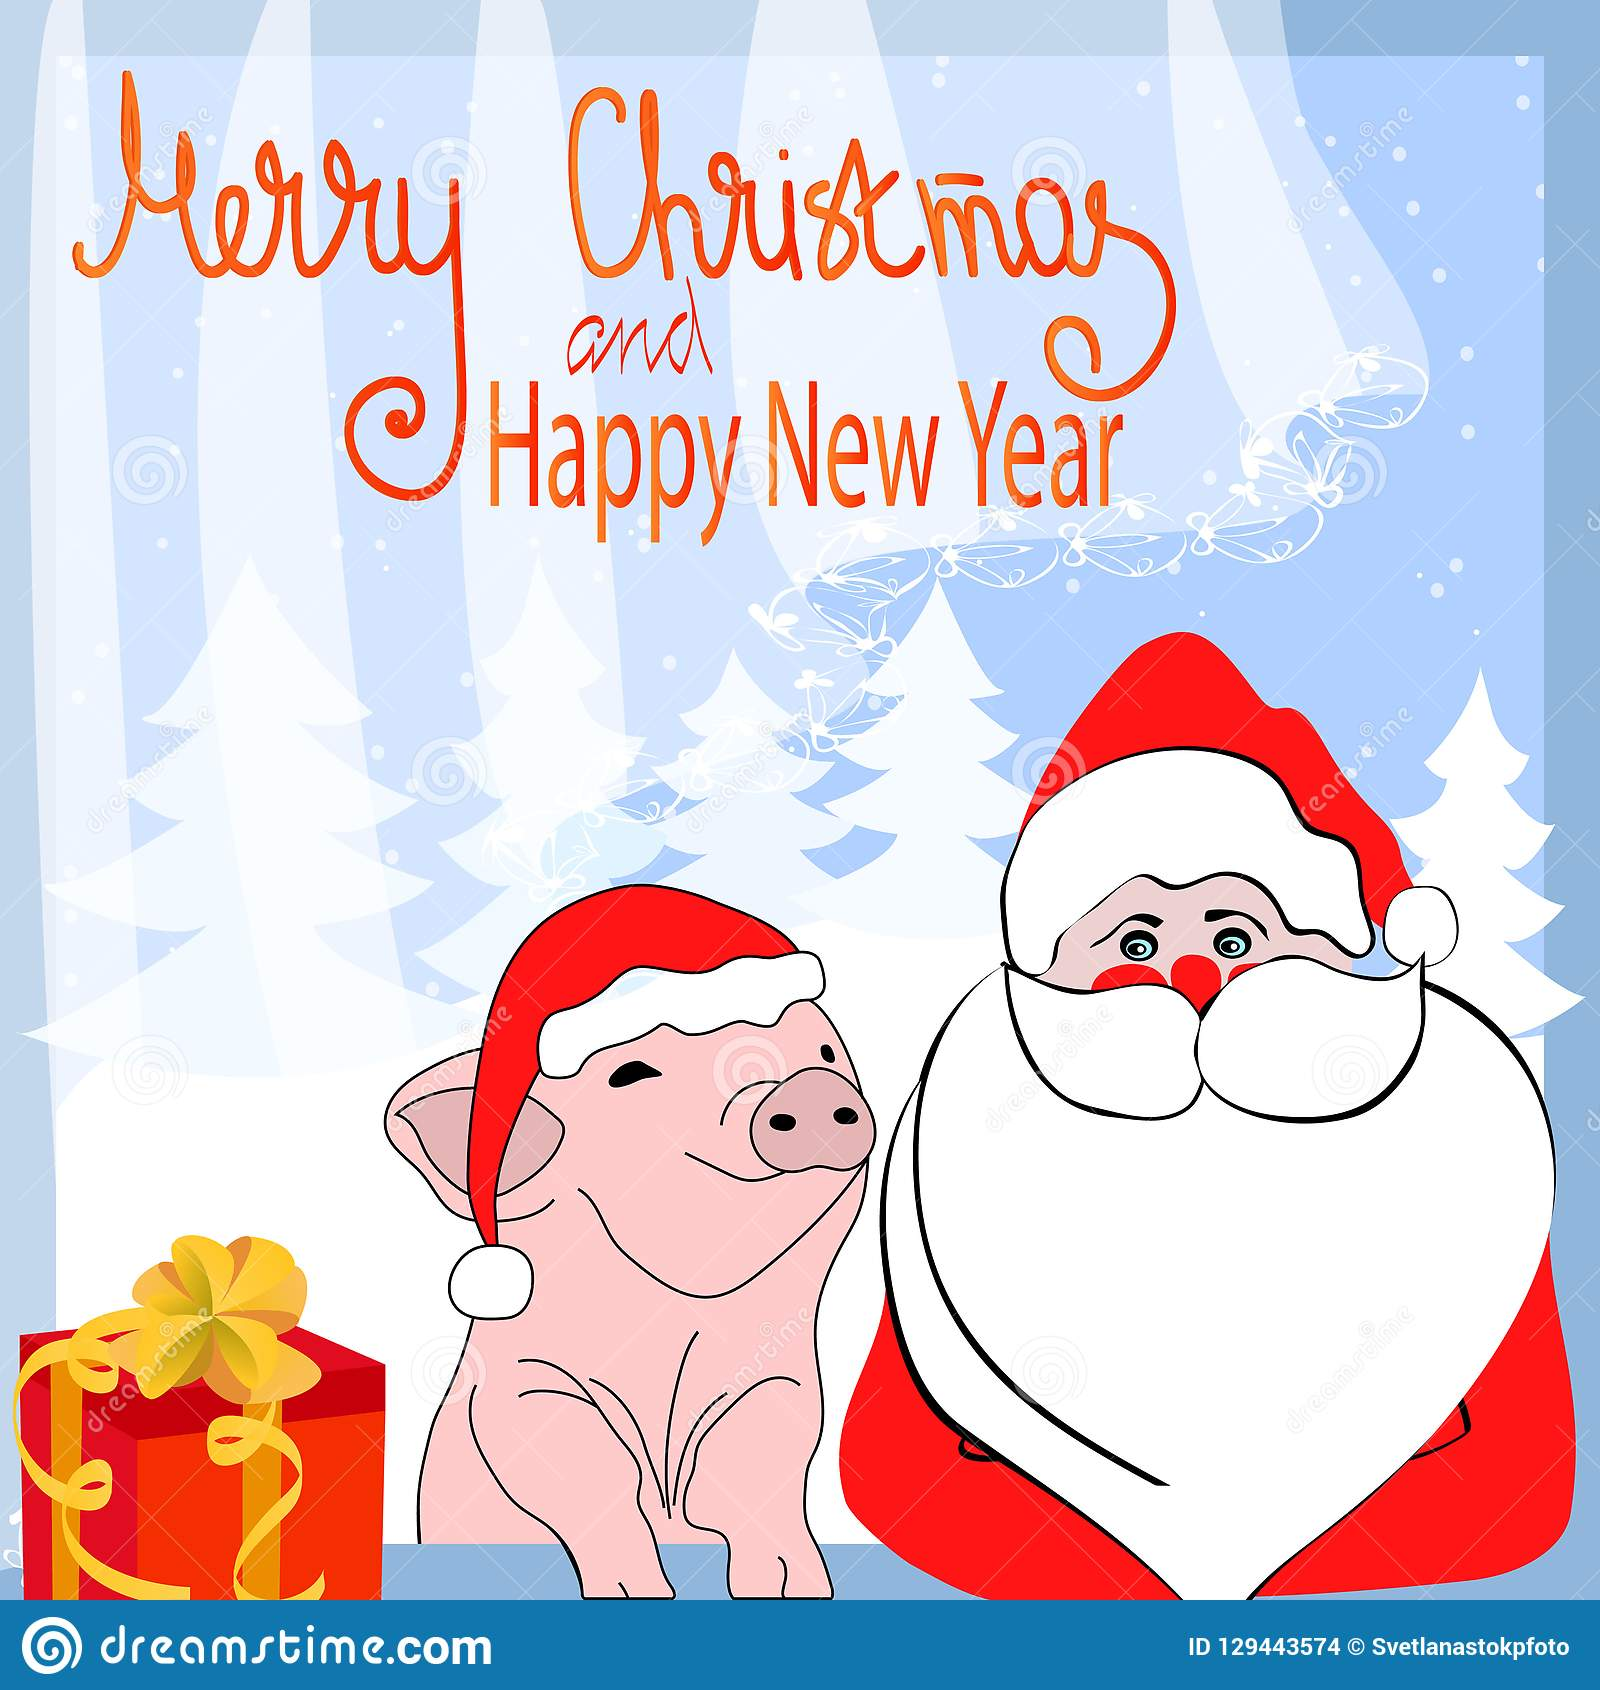 Funny Merry Christmas.Merry Christmas And Happy New Year Cartoon Funny Characters